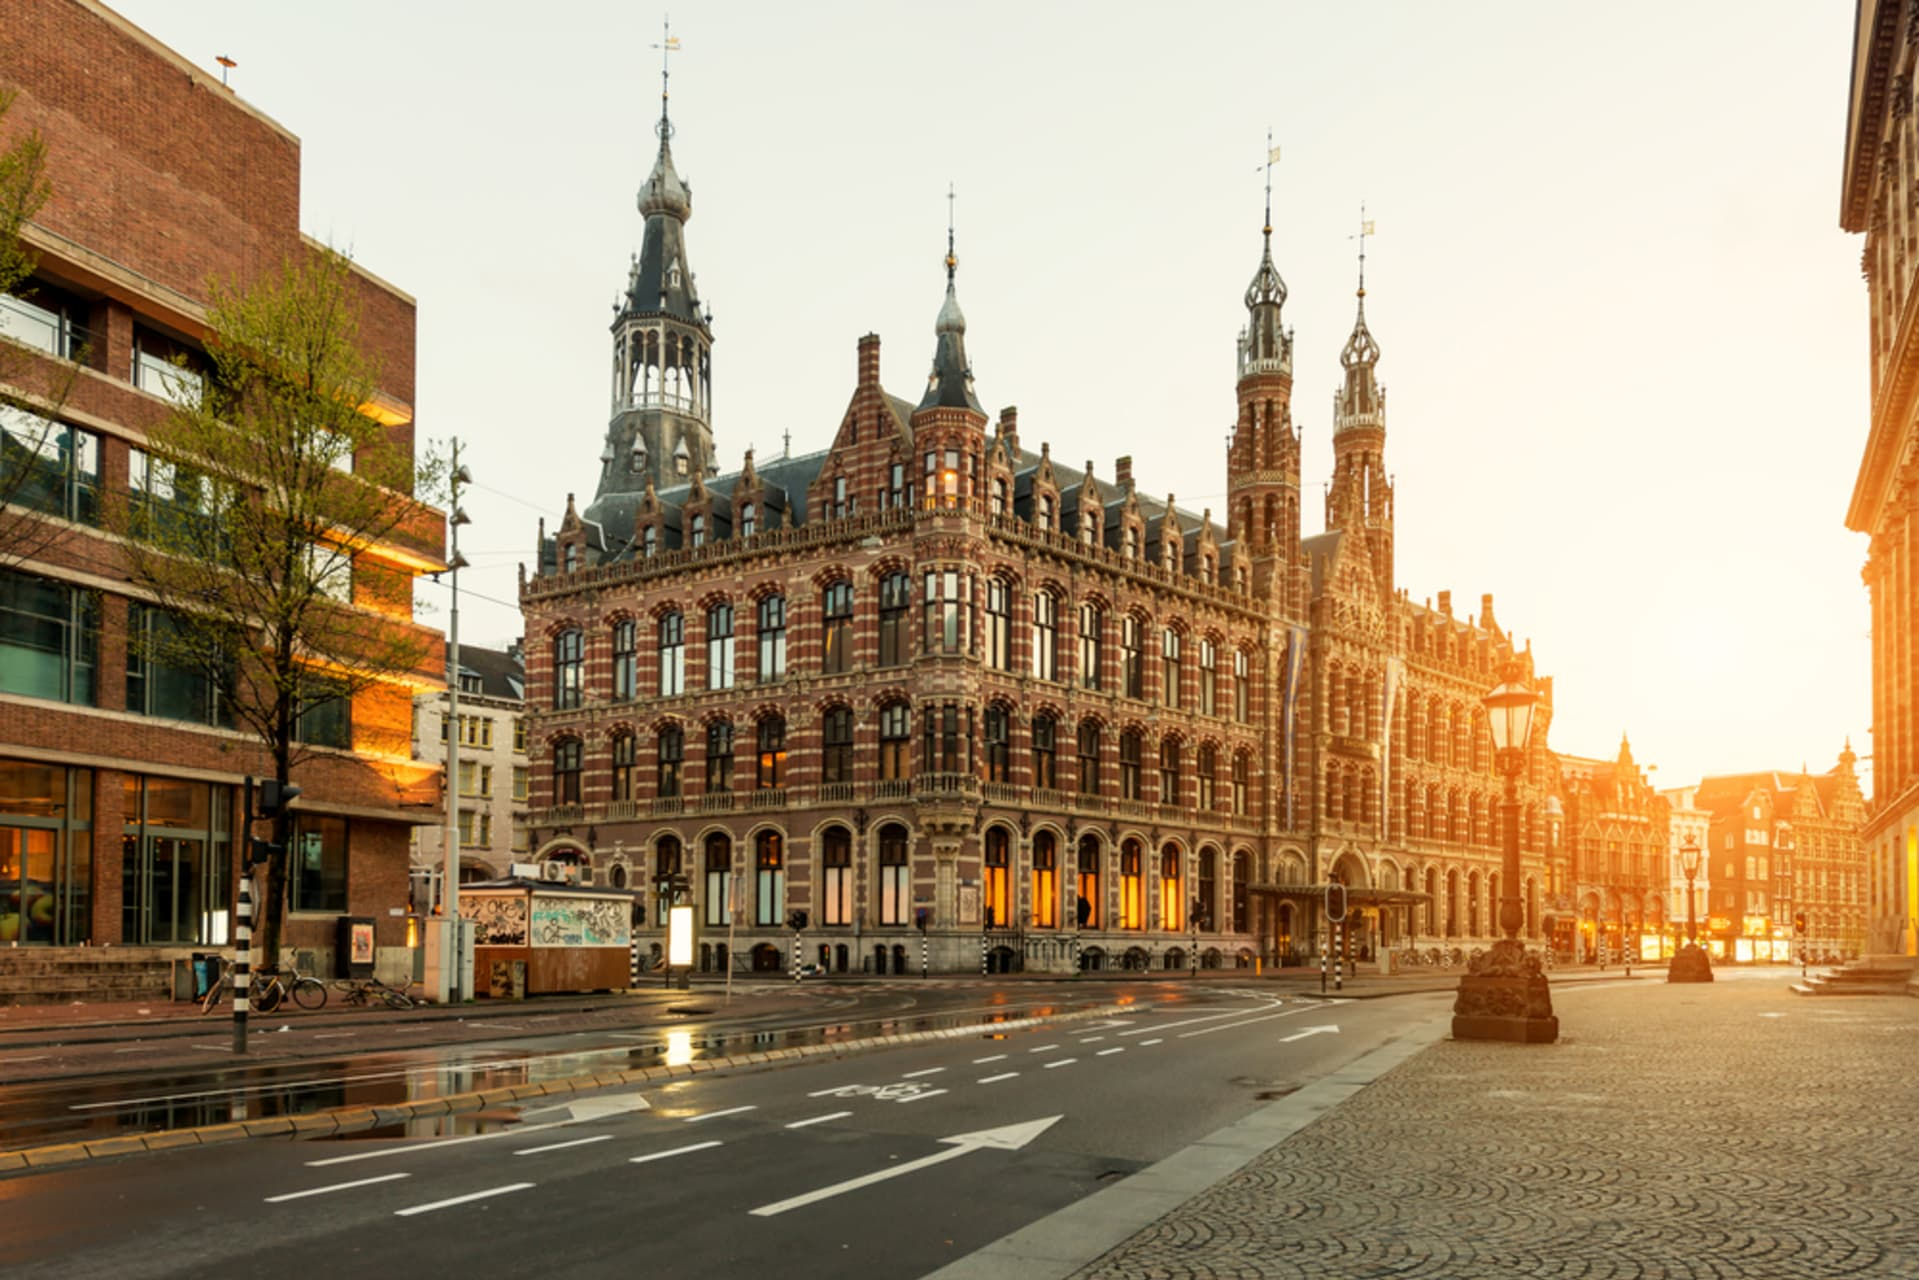 Amsterdam - Princes and Paupers - Royal Palace to the Jordaan